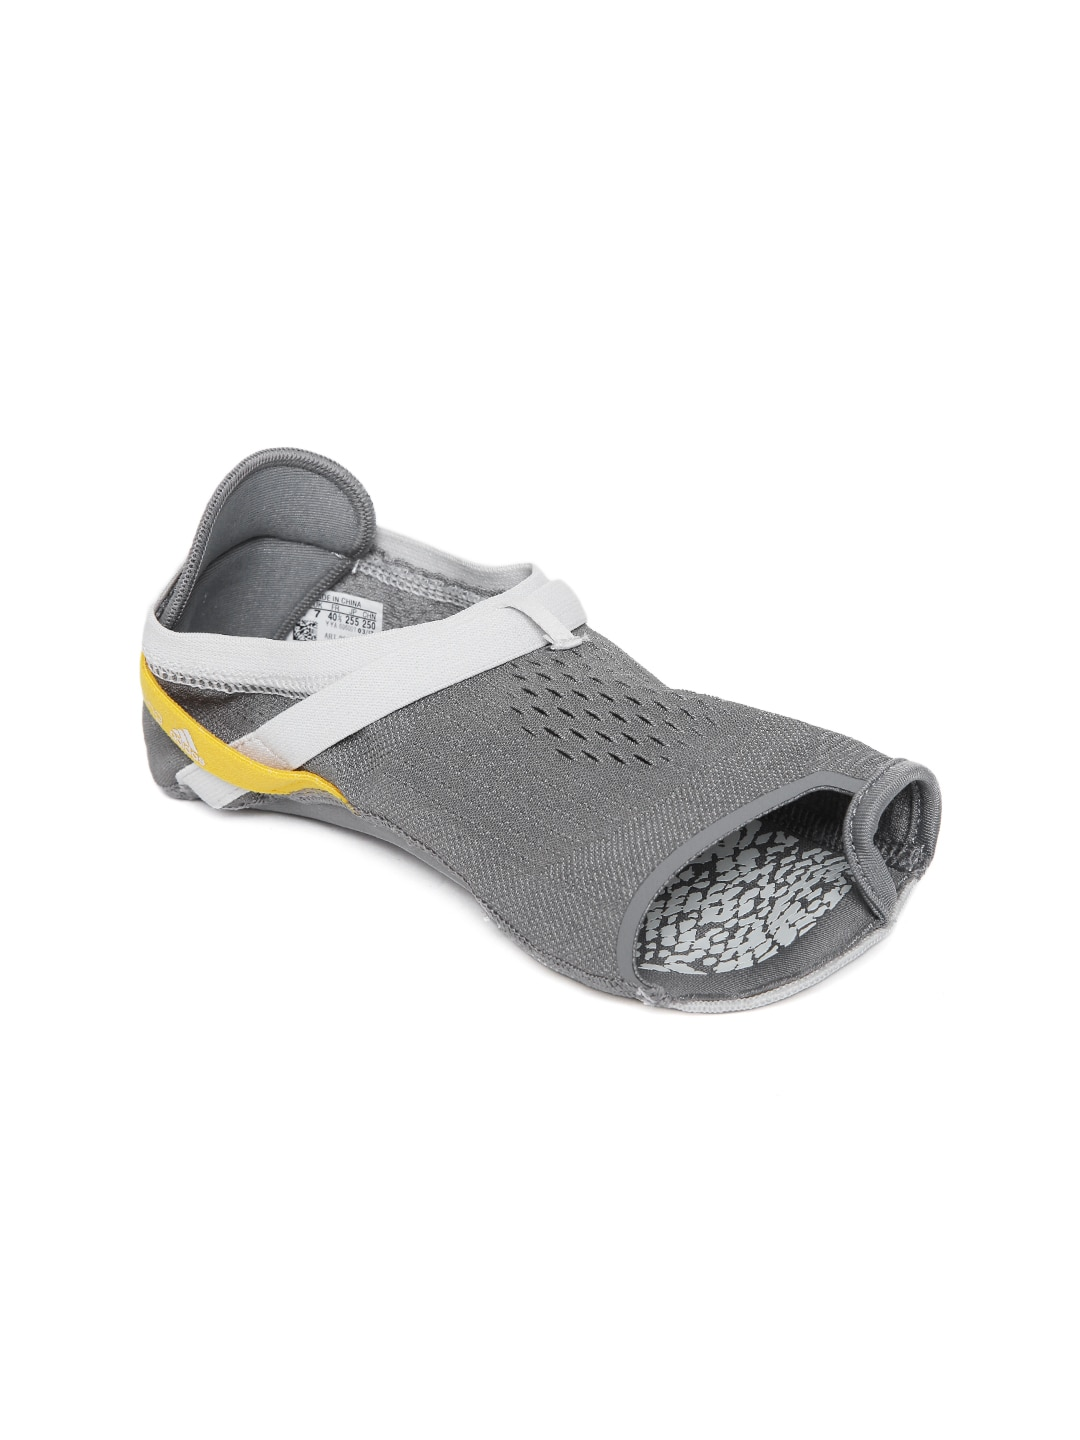 newest ad054 fb555 Adidas Slip On Shoes - Buy Adidas Slip On Shoes online in In